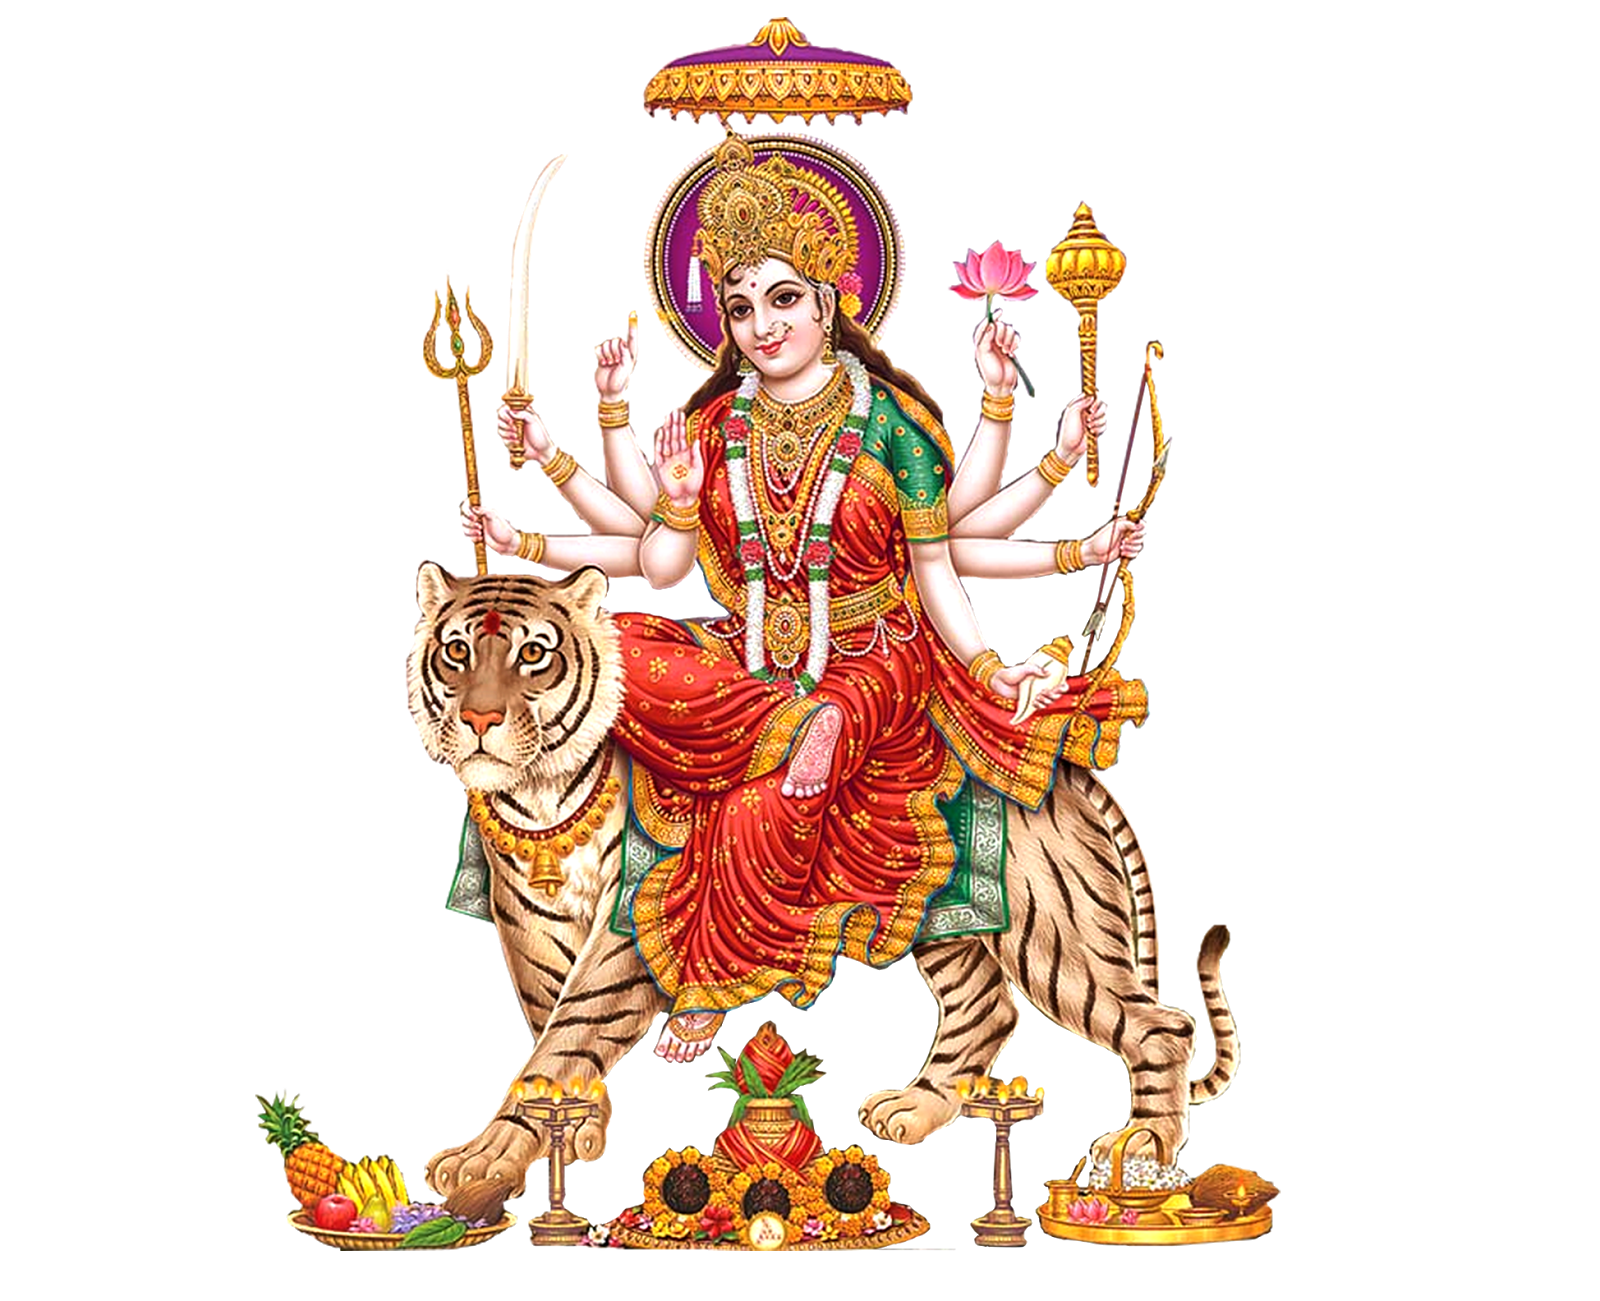 High Resolution Durga Png Clipart Download Free Durga Transparent Png Images For Your Works This Is Image Is Cleaned An In 2020 Durga Images Durga Mandala Art Lesson